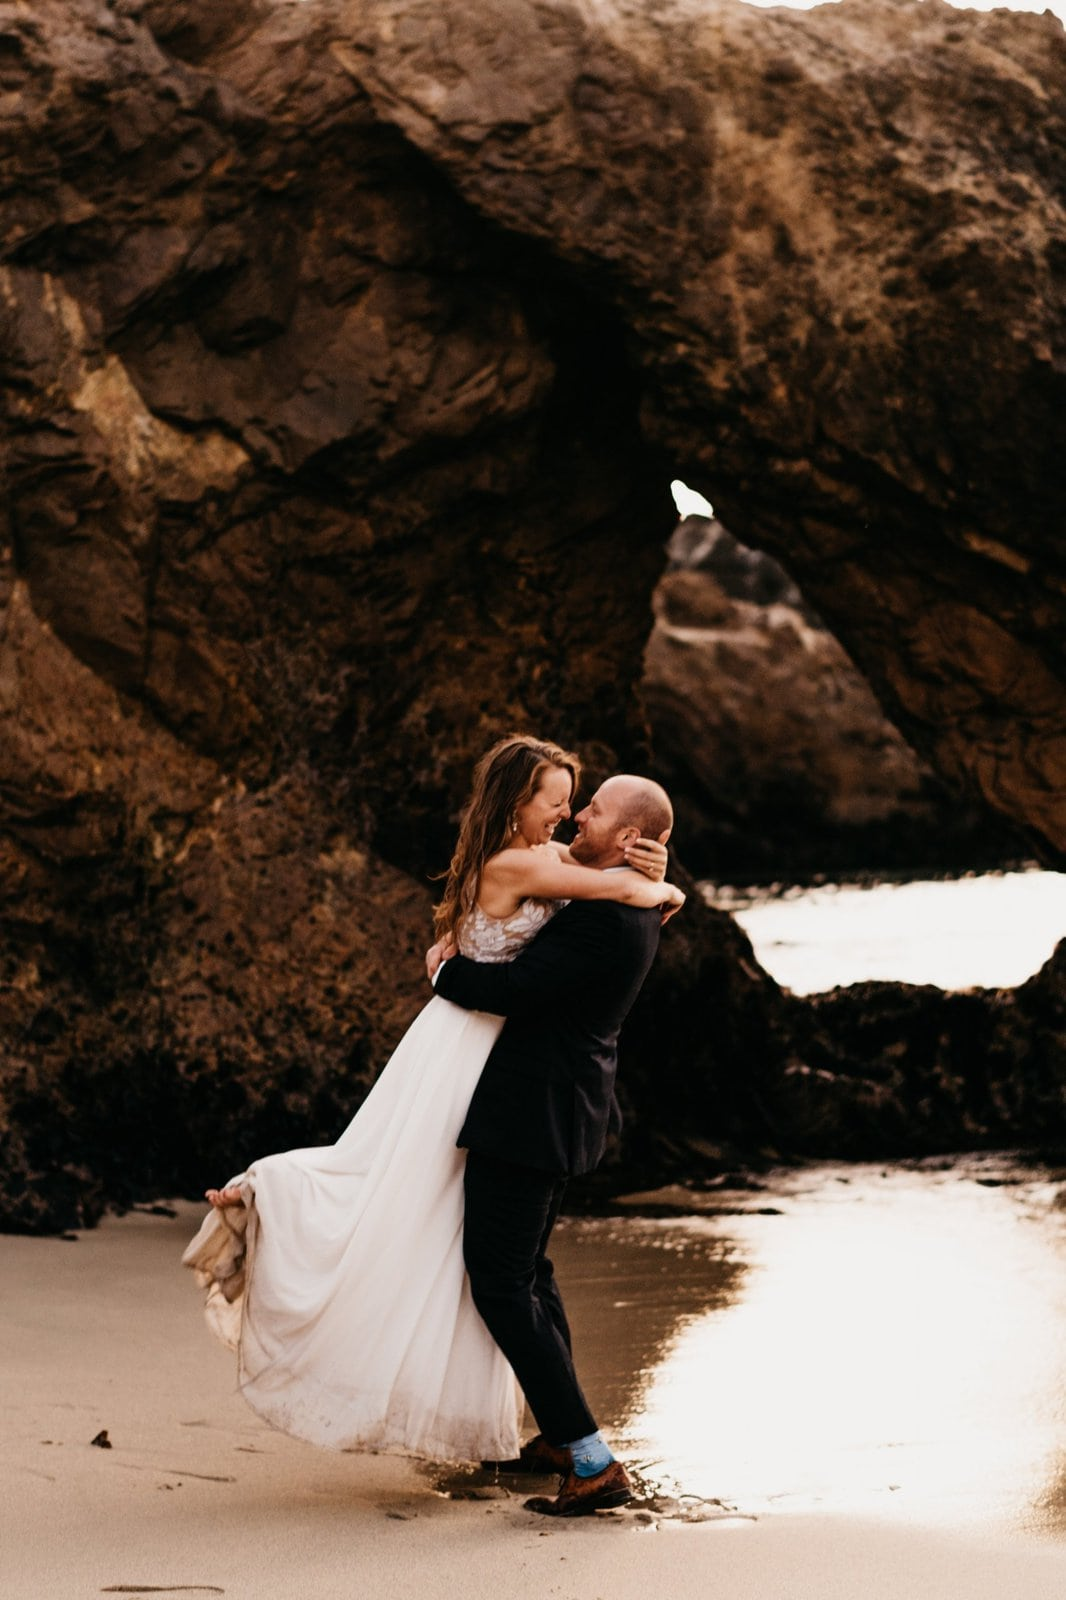 bride and groom by cave.